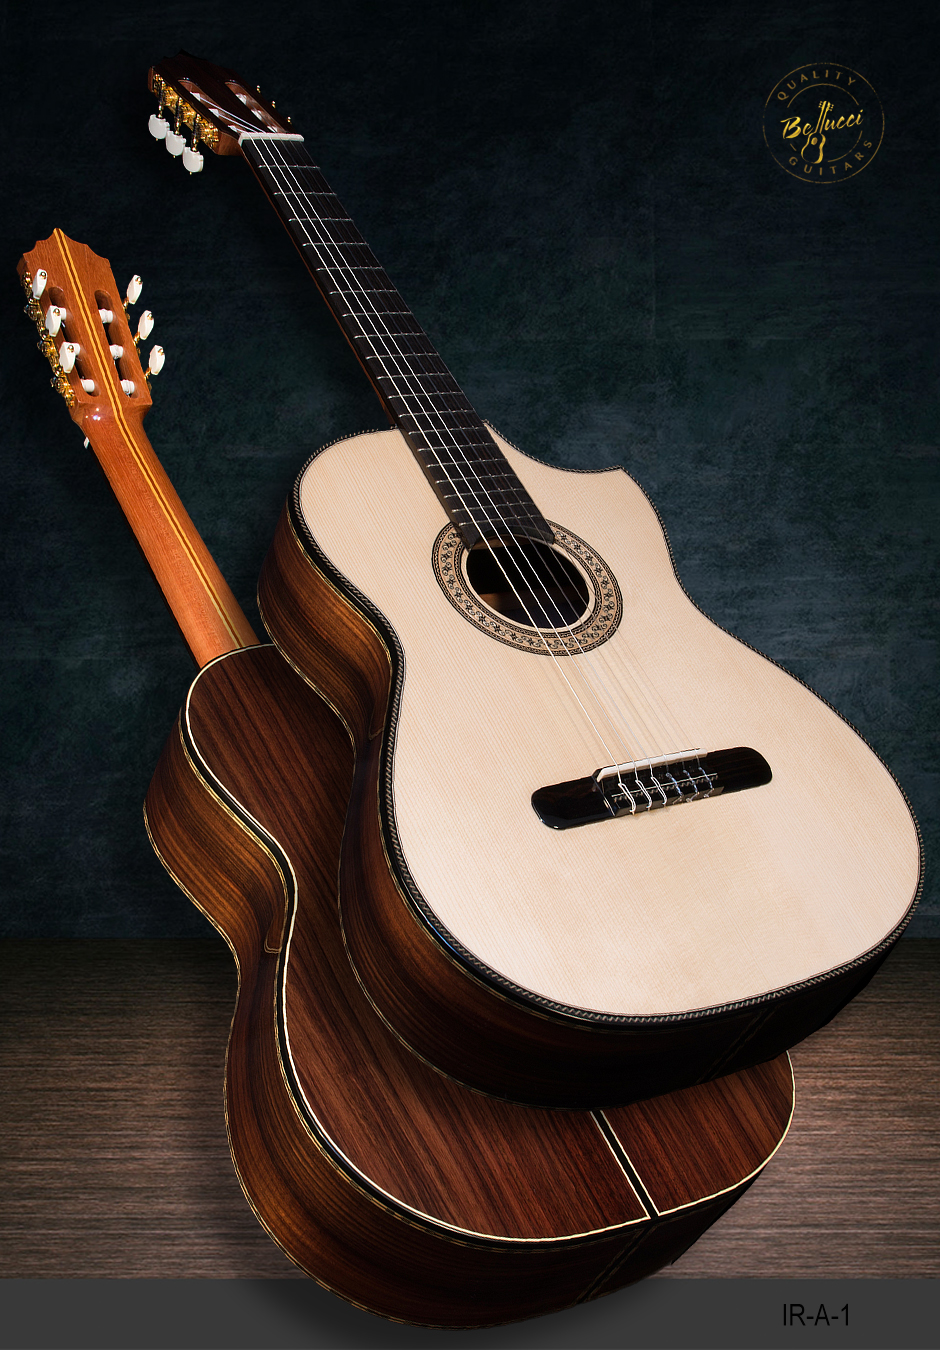 Indian rosewood B&S, Italian Spruce top, Indented Cutaway, Model IR-A-2